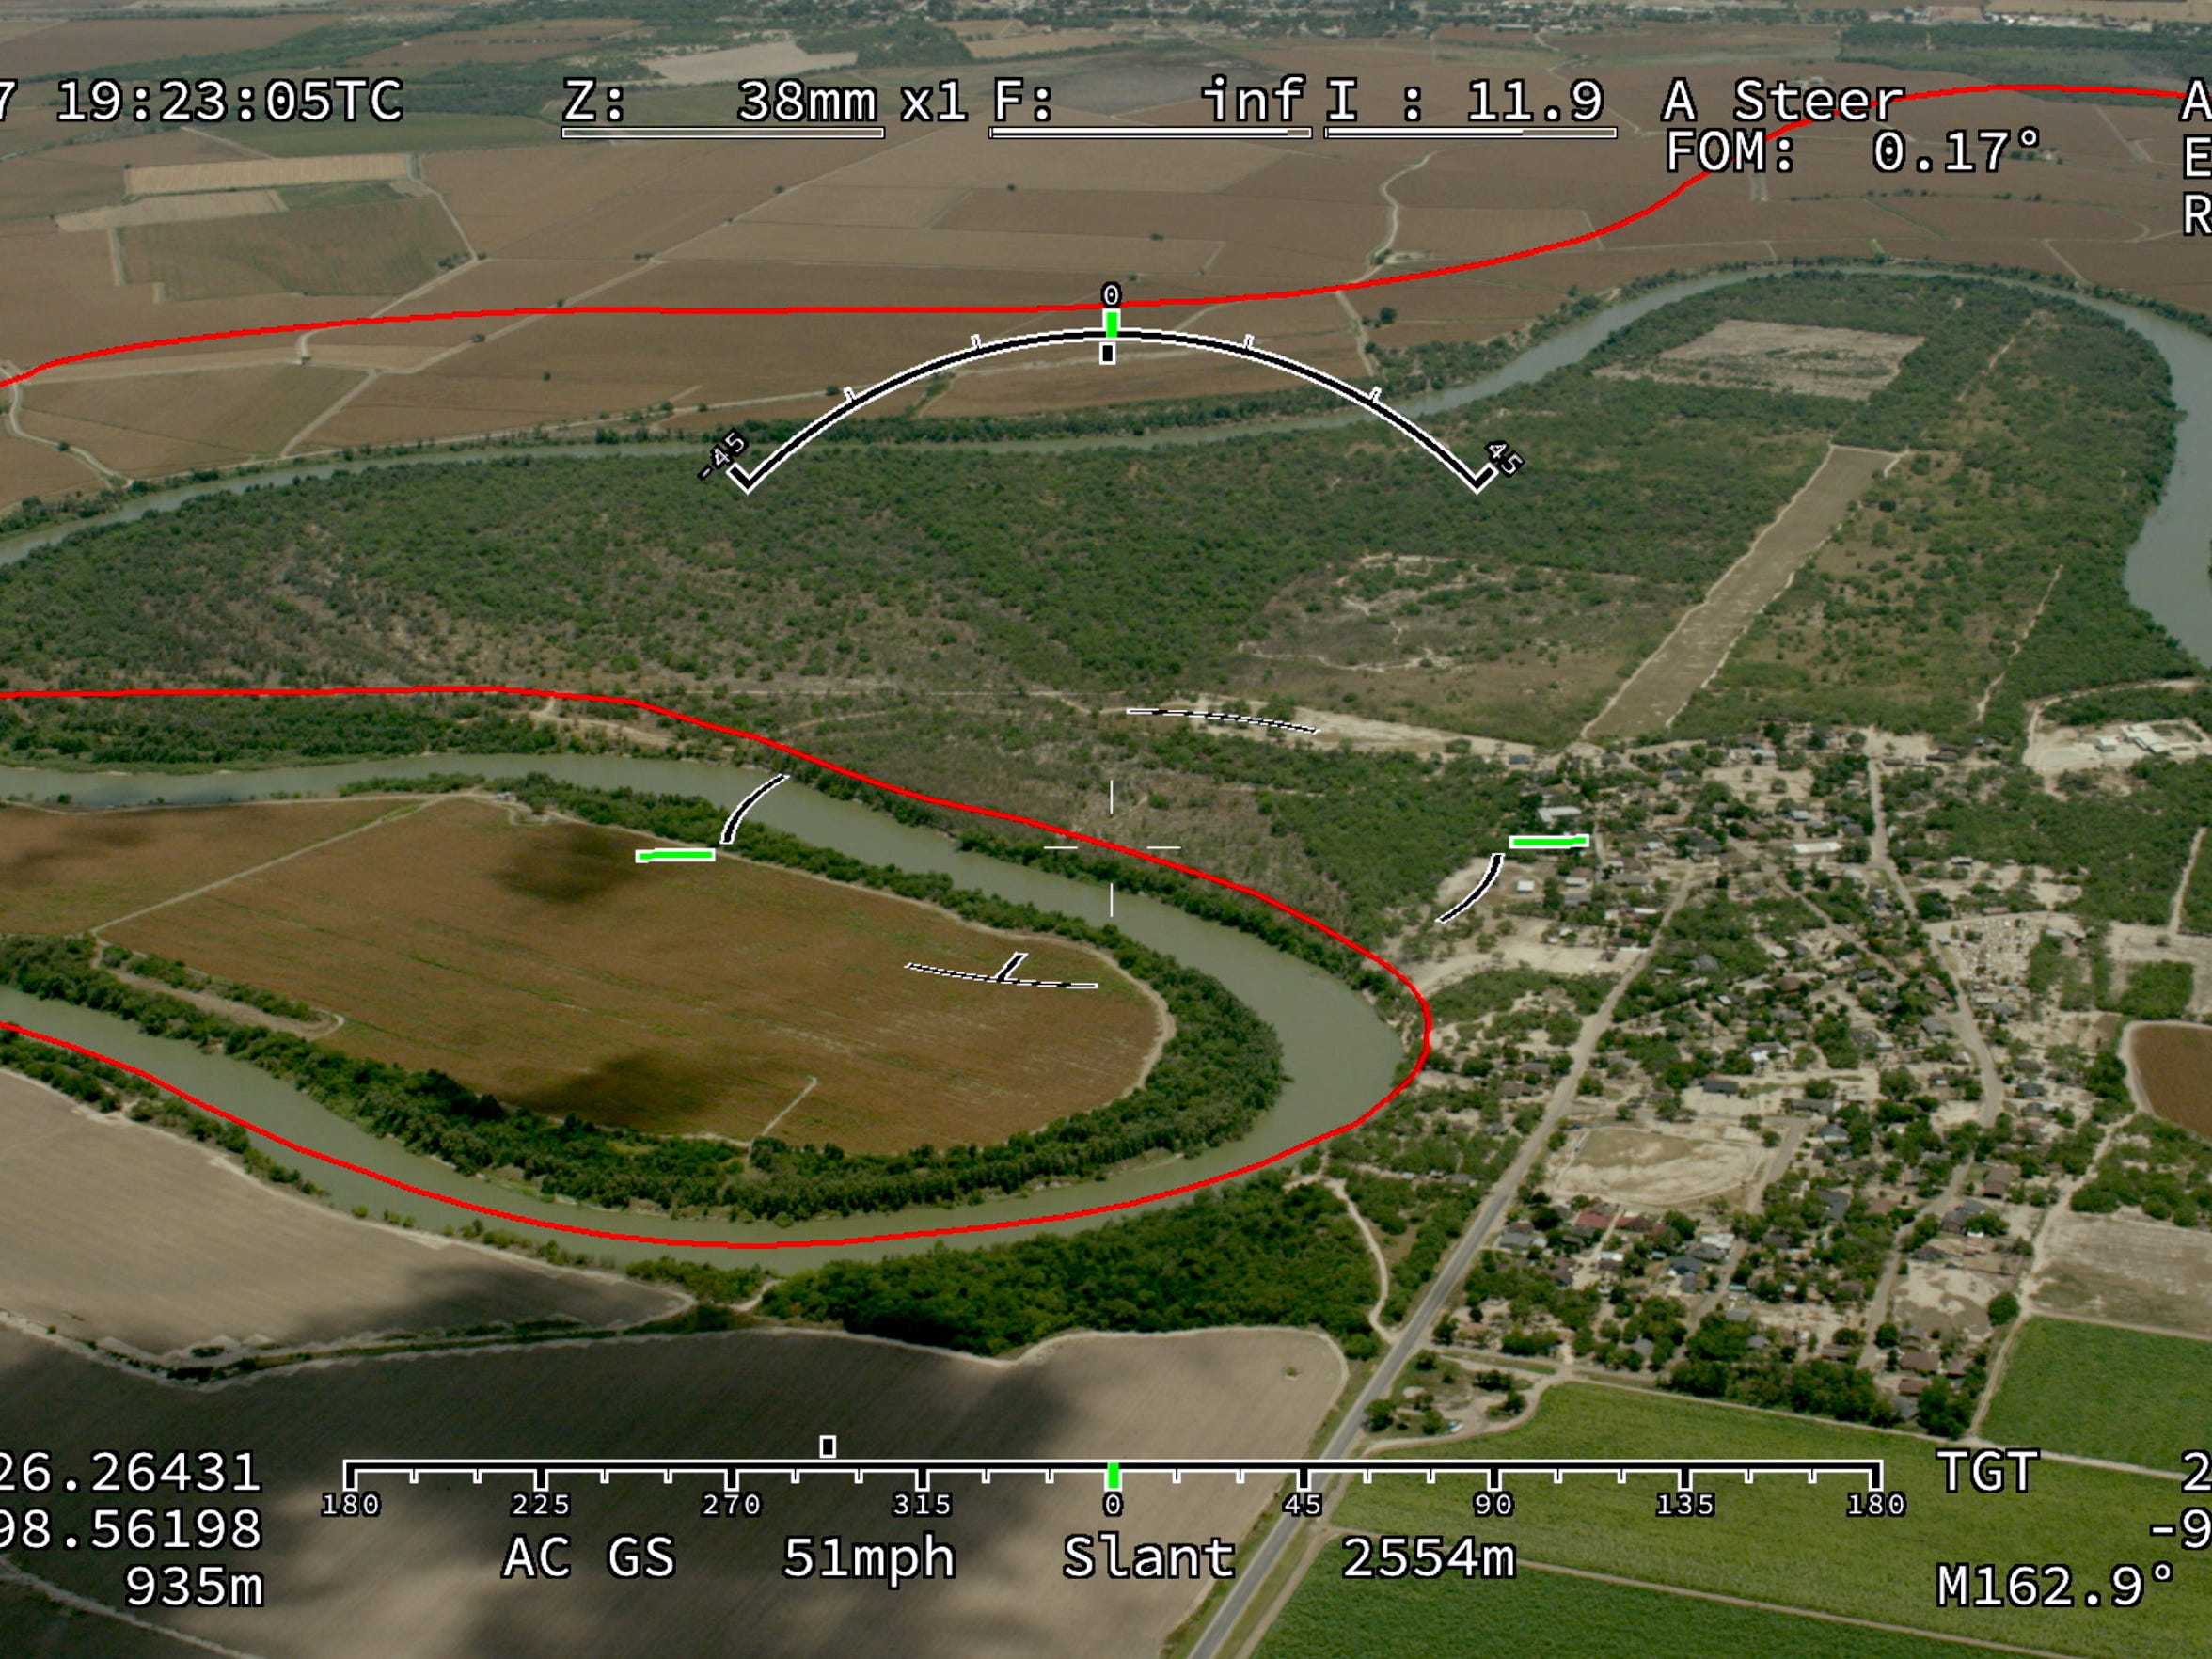 Los Ebanos, Texas, is seen below through the video overlay of the helicopter camera. The red line indicates the border line, which is slightly skewed because of the position of the helicopter.